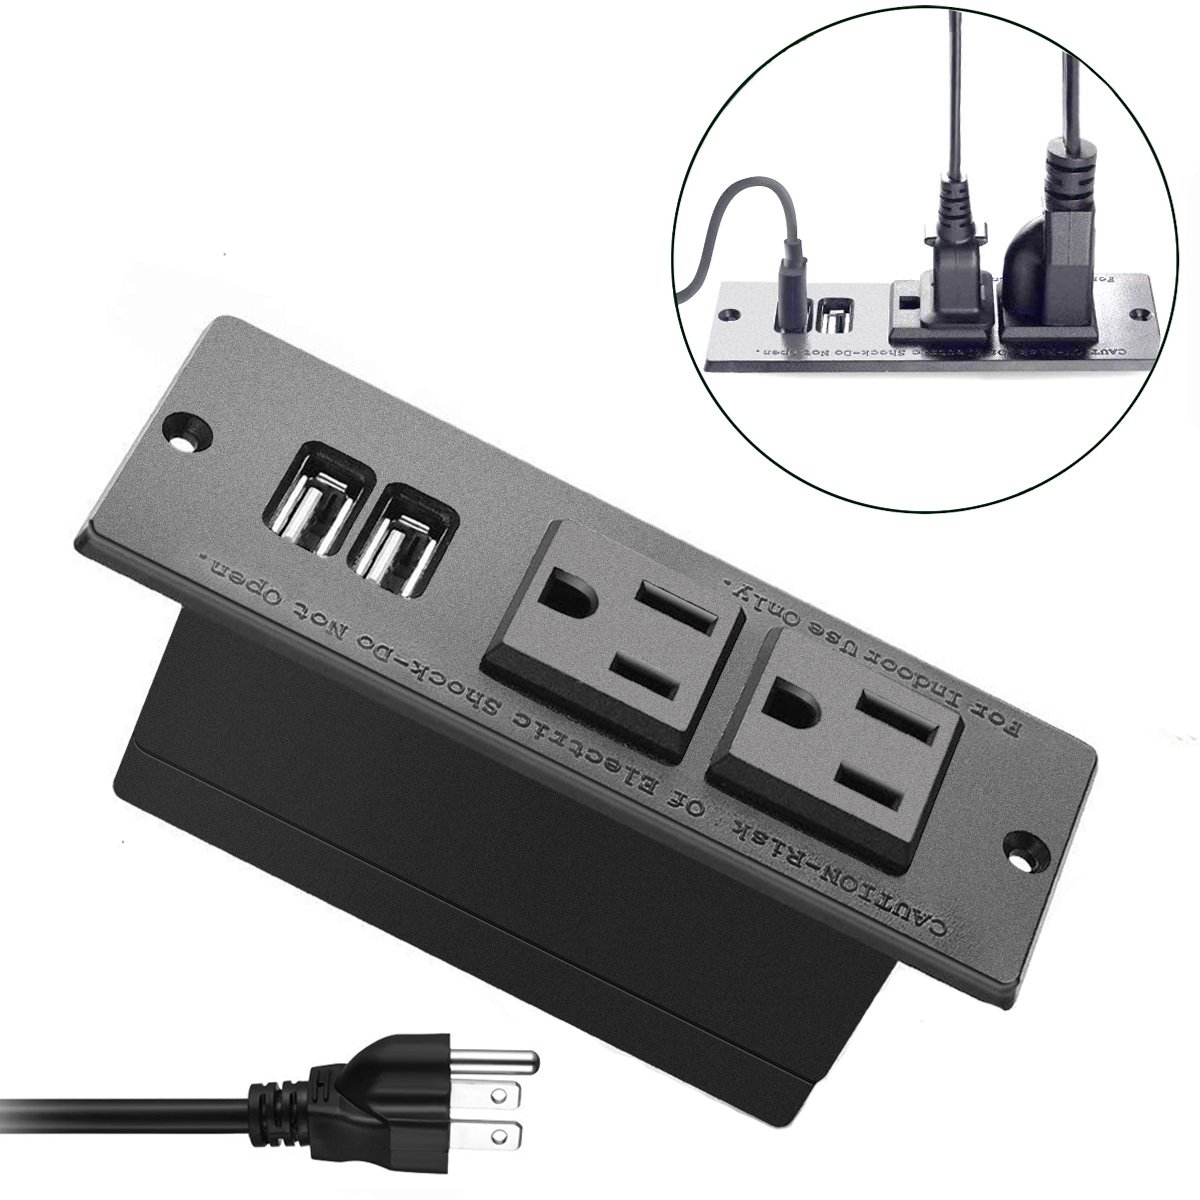 Conference Recessed Power Strip Socket 9.8Ft Cord,Desktop Power Grommet Power Strip With 2-Outlet & 2 USB Ports